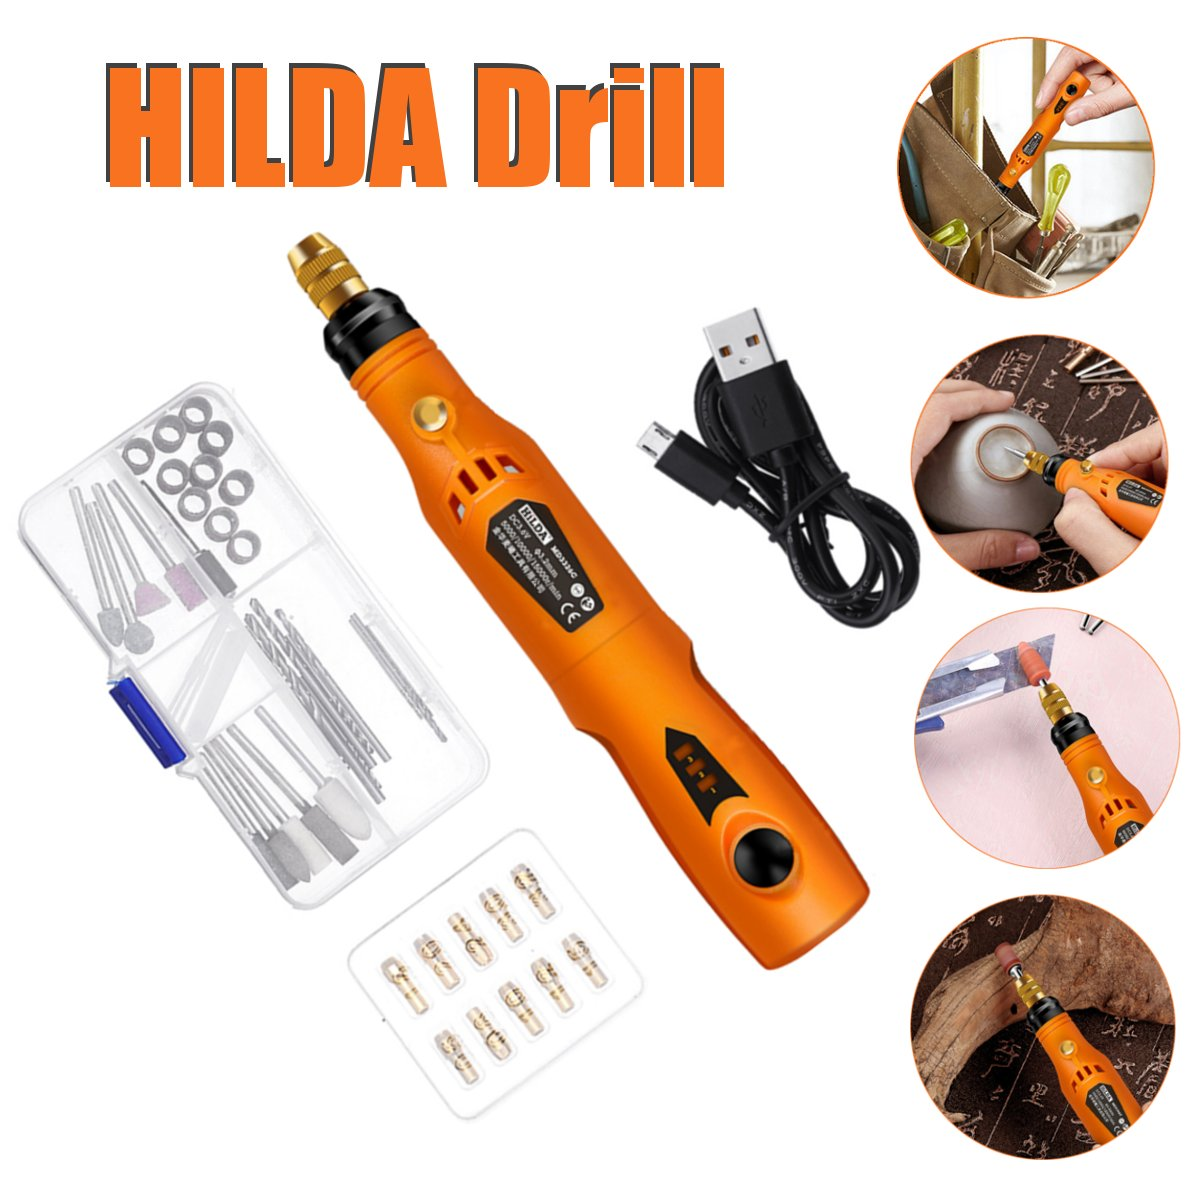 3.6V DC Variable Speed Rotary Tools DIY Mini Wireless Electric Grinder Set Wood Carving Pen For Milling Engraver